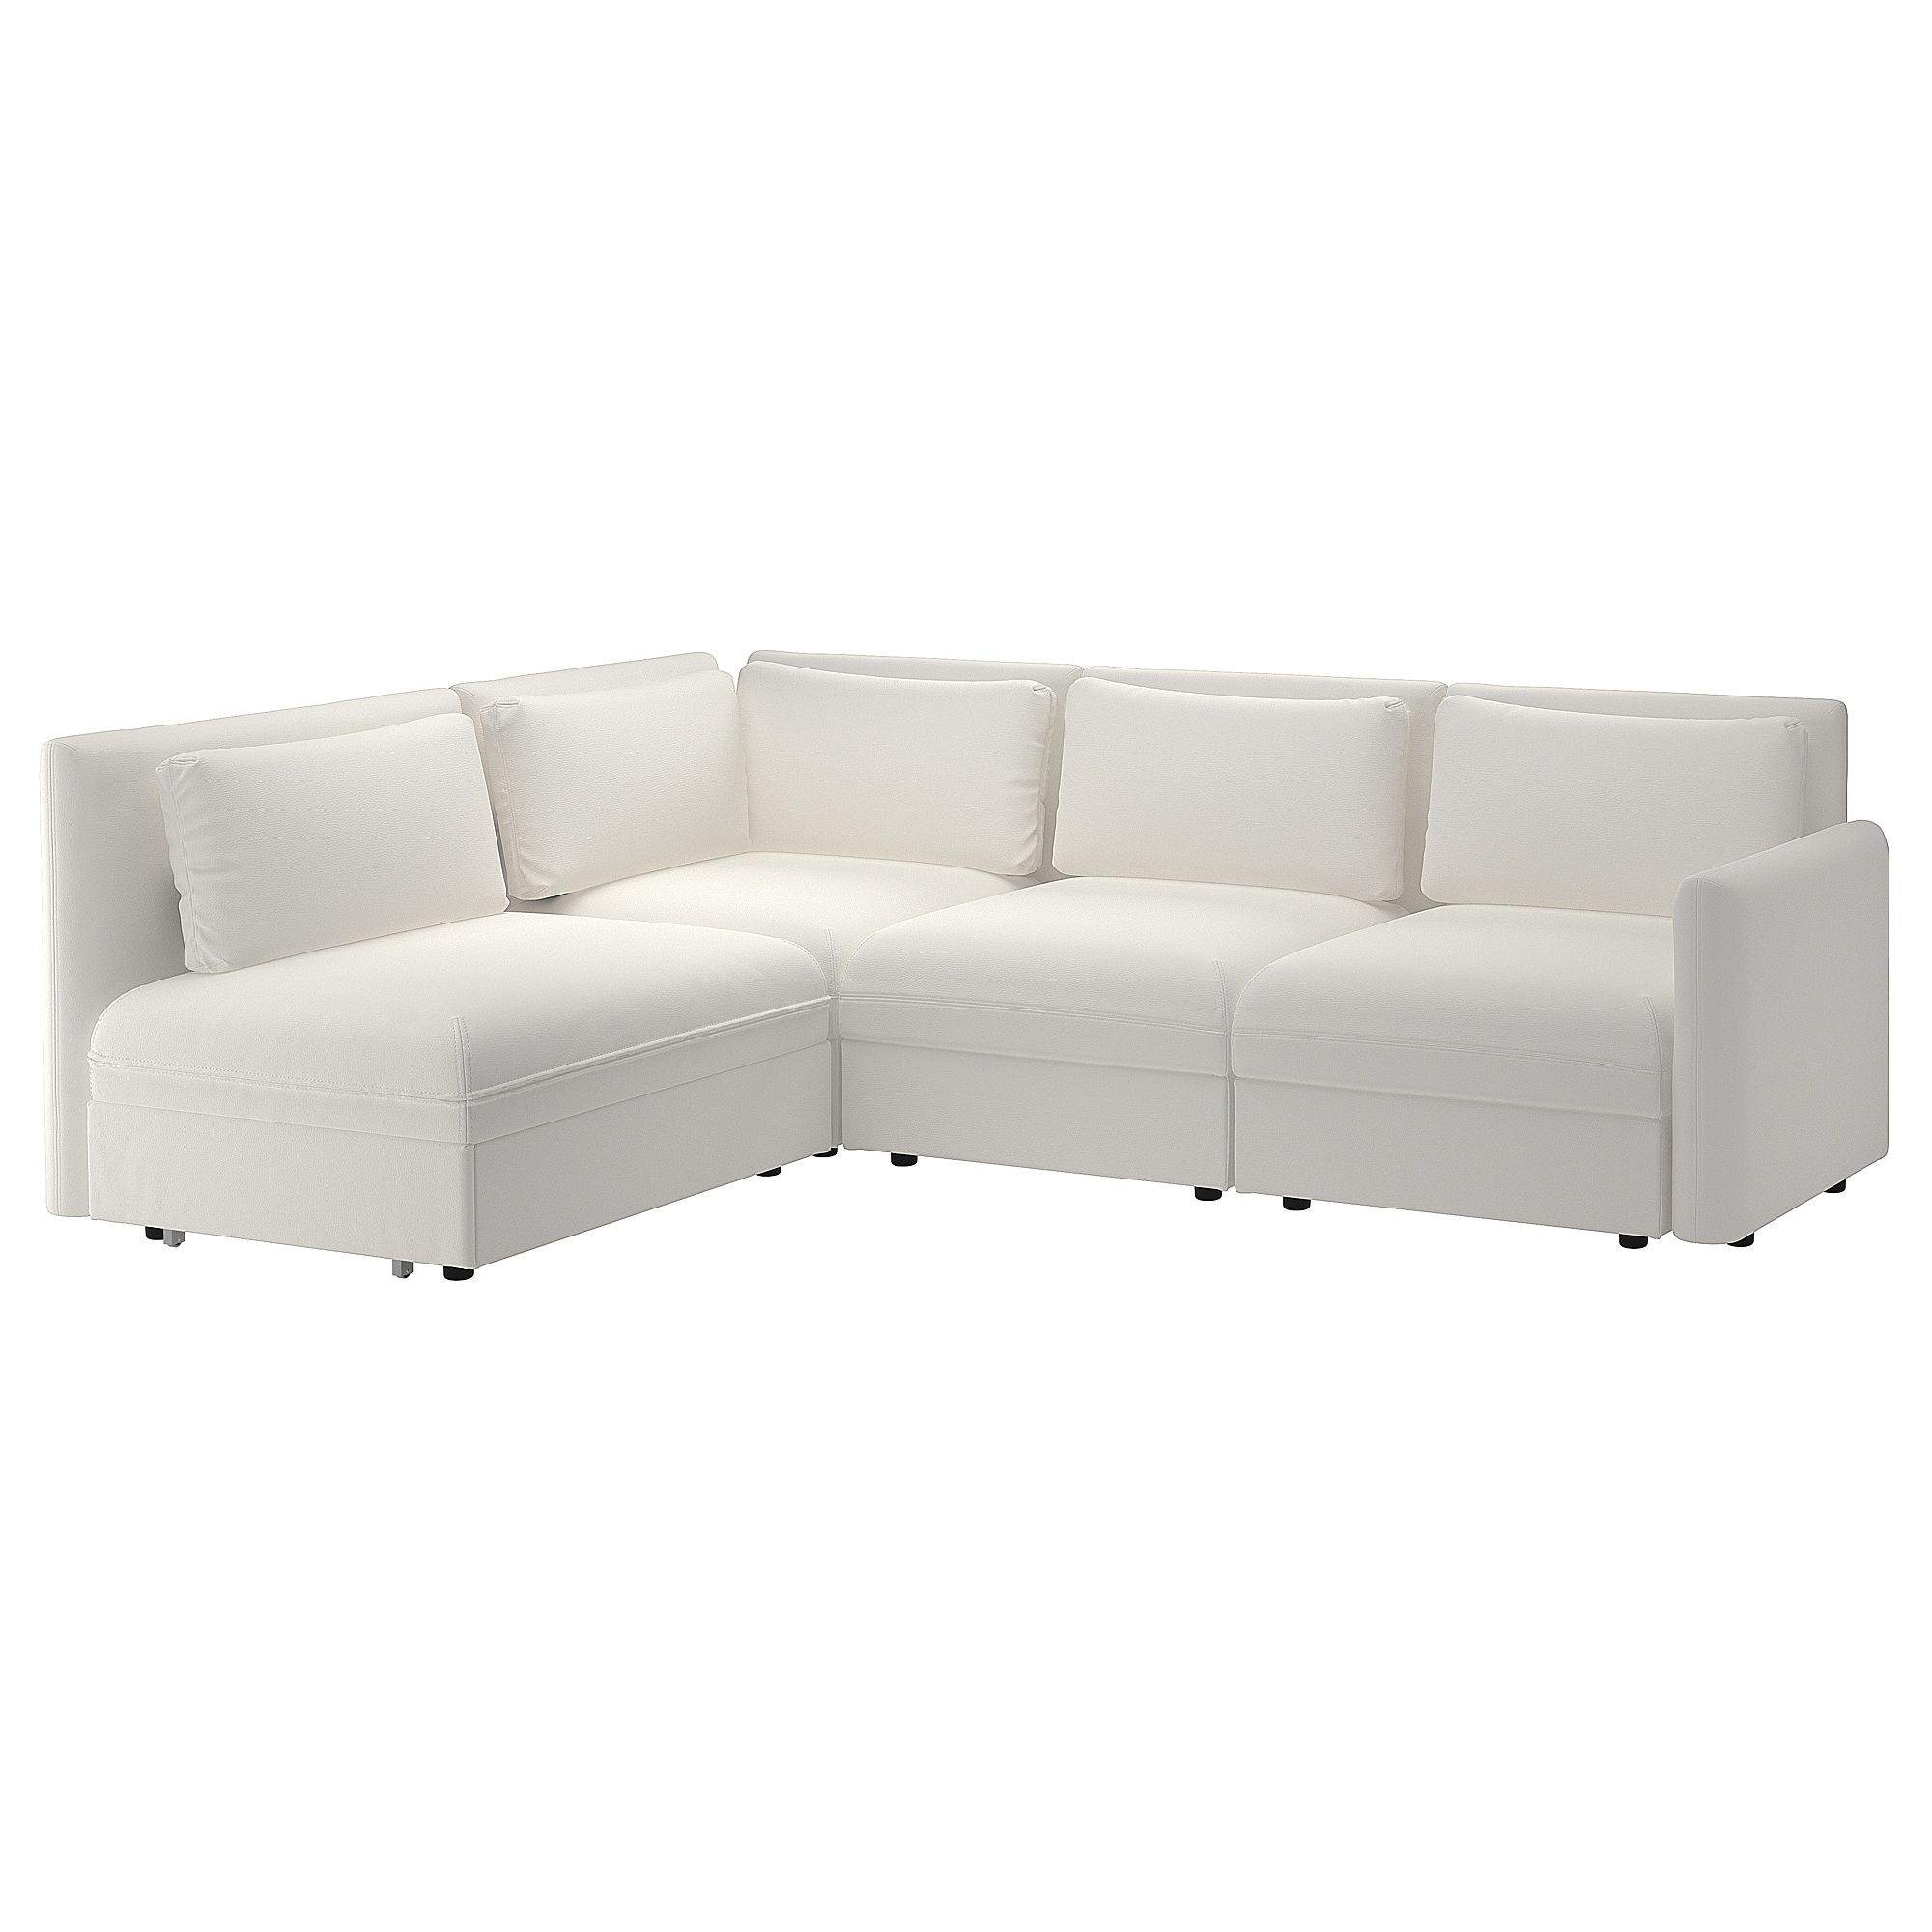 Vallentuna 4 Seat Modular Sofa With 3 Beds Mod Sectional 3 Seat W Slpr Sect Vallentuna And Storage Murum